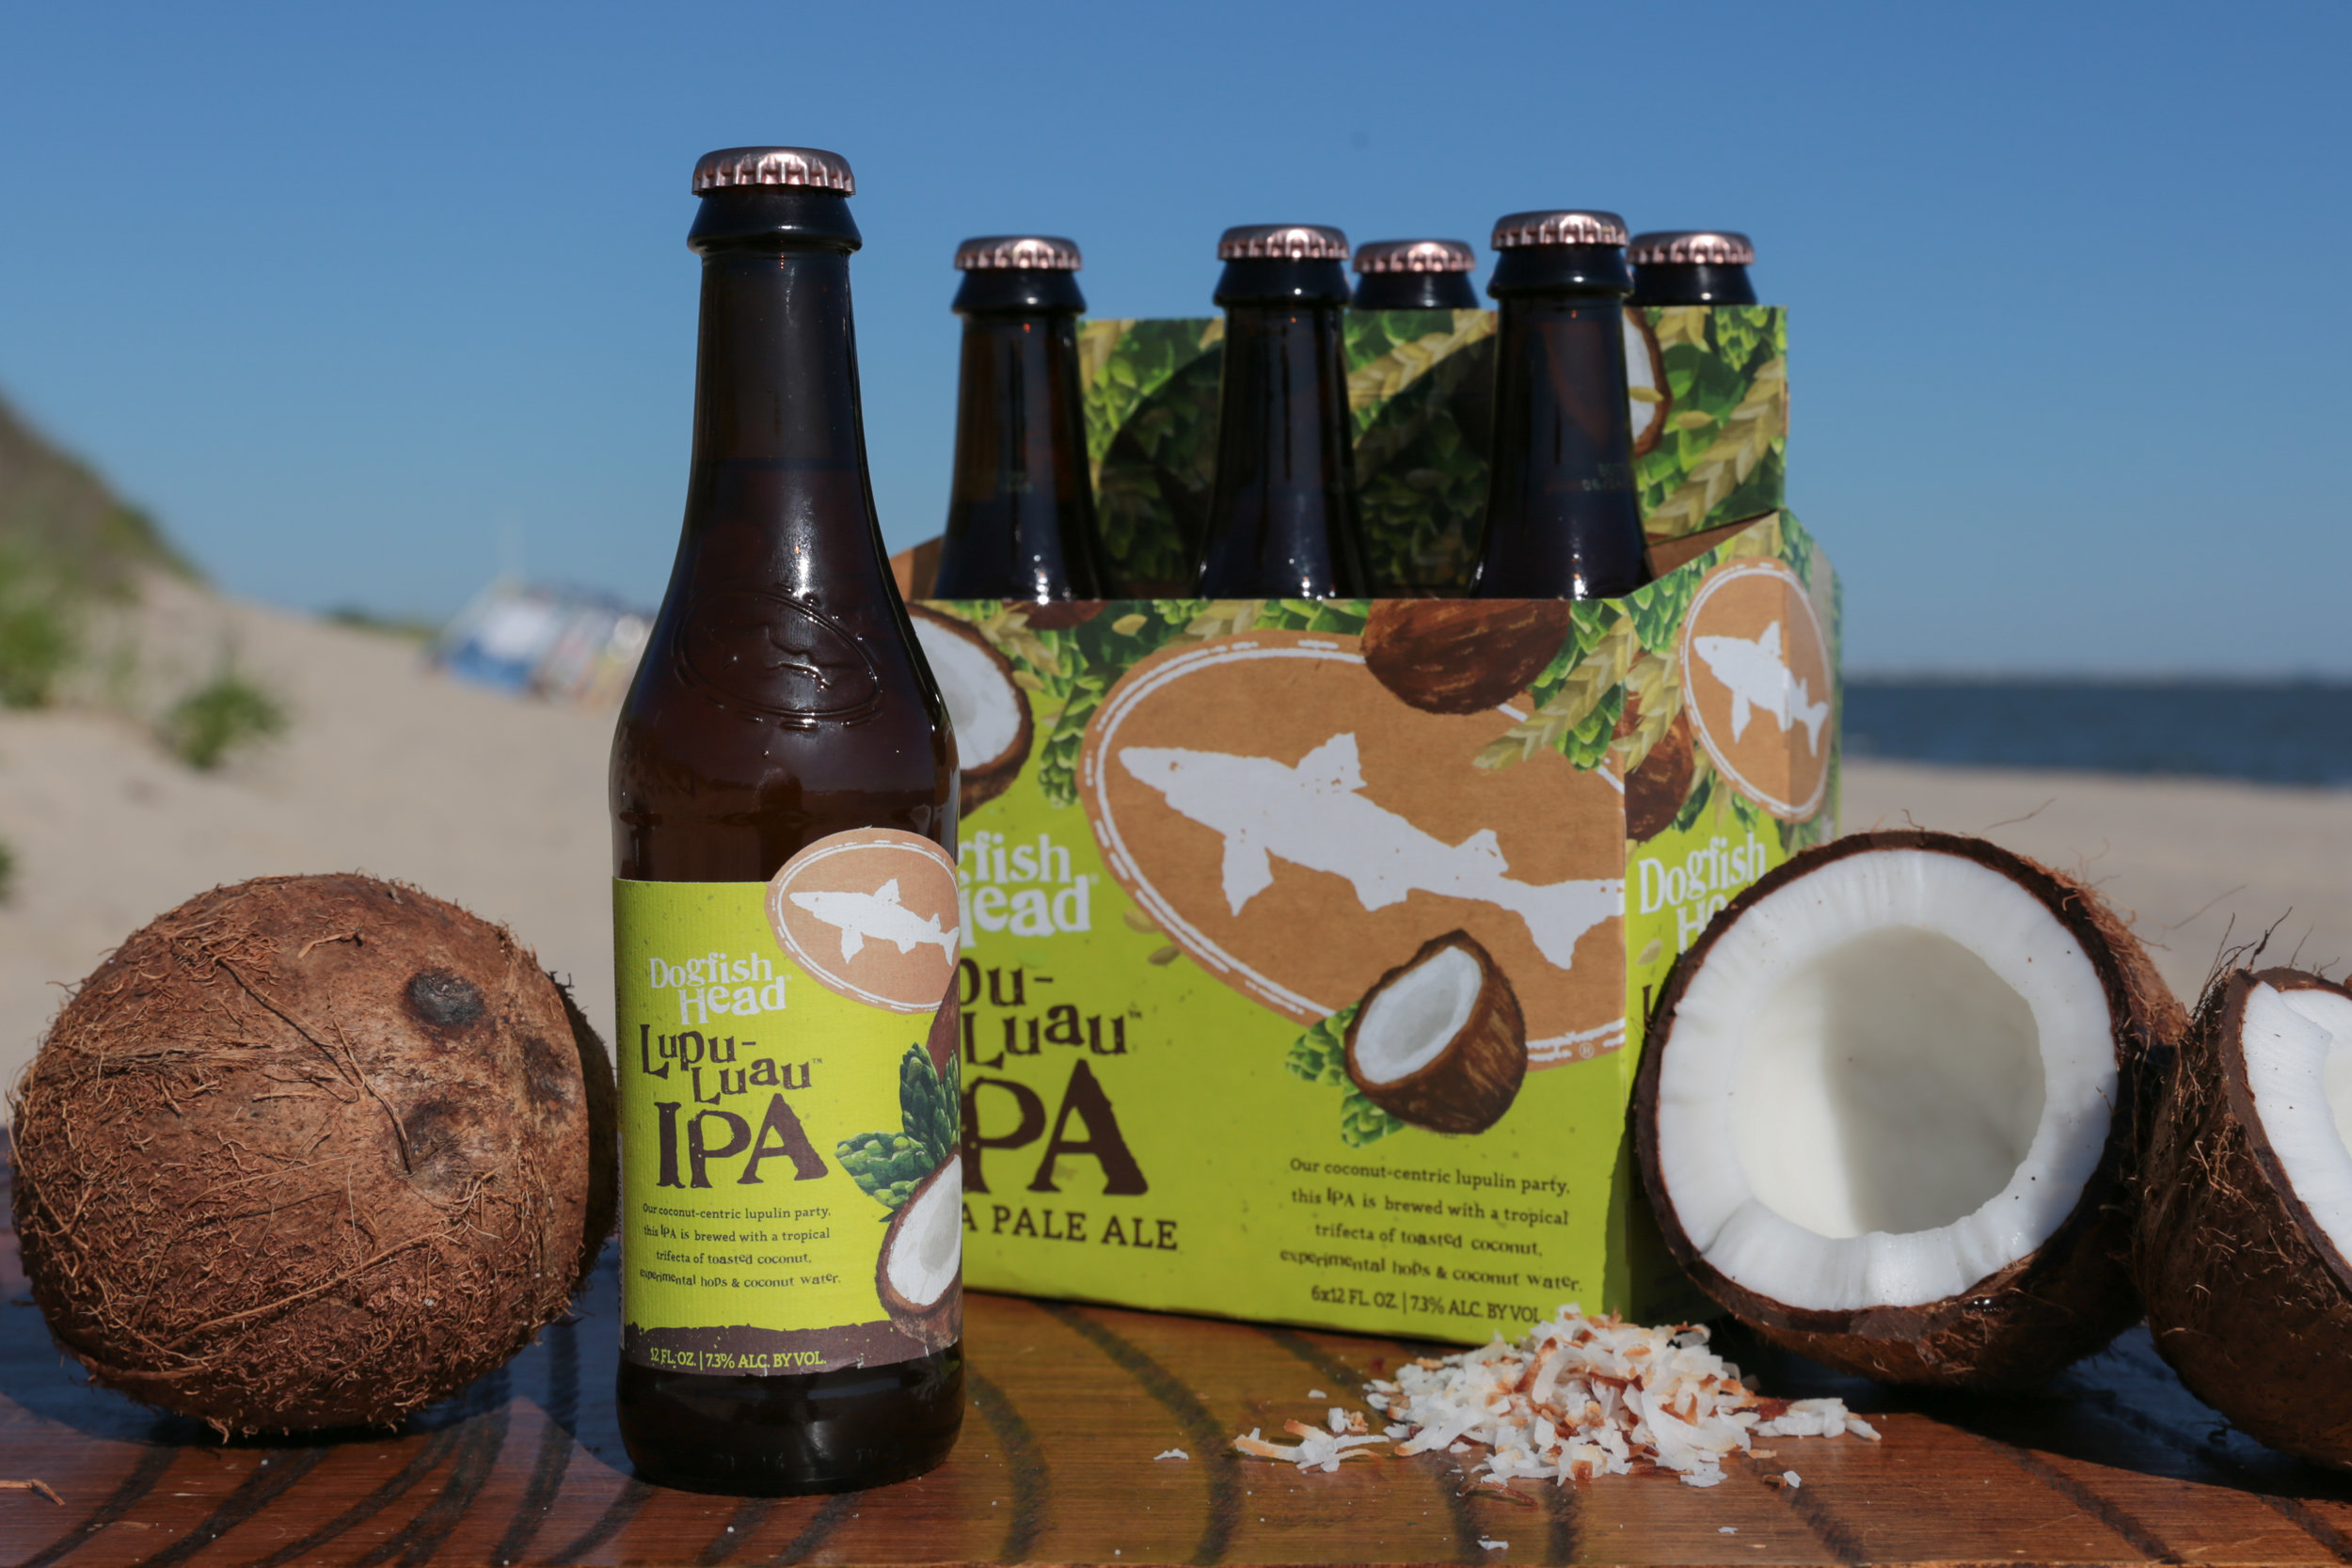 image courtesy Dogfish Head brewery